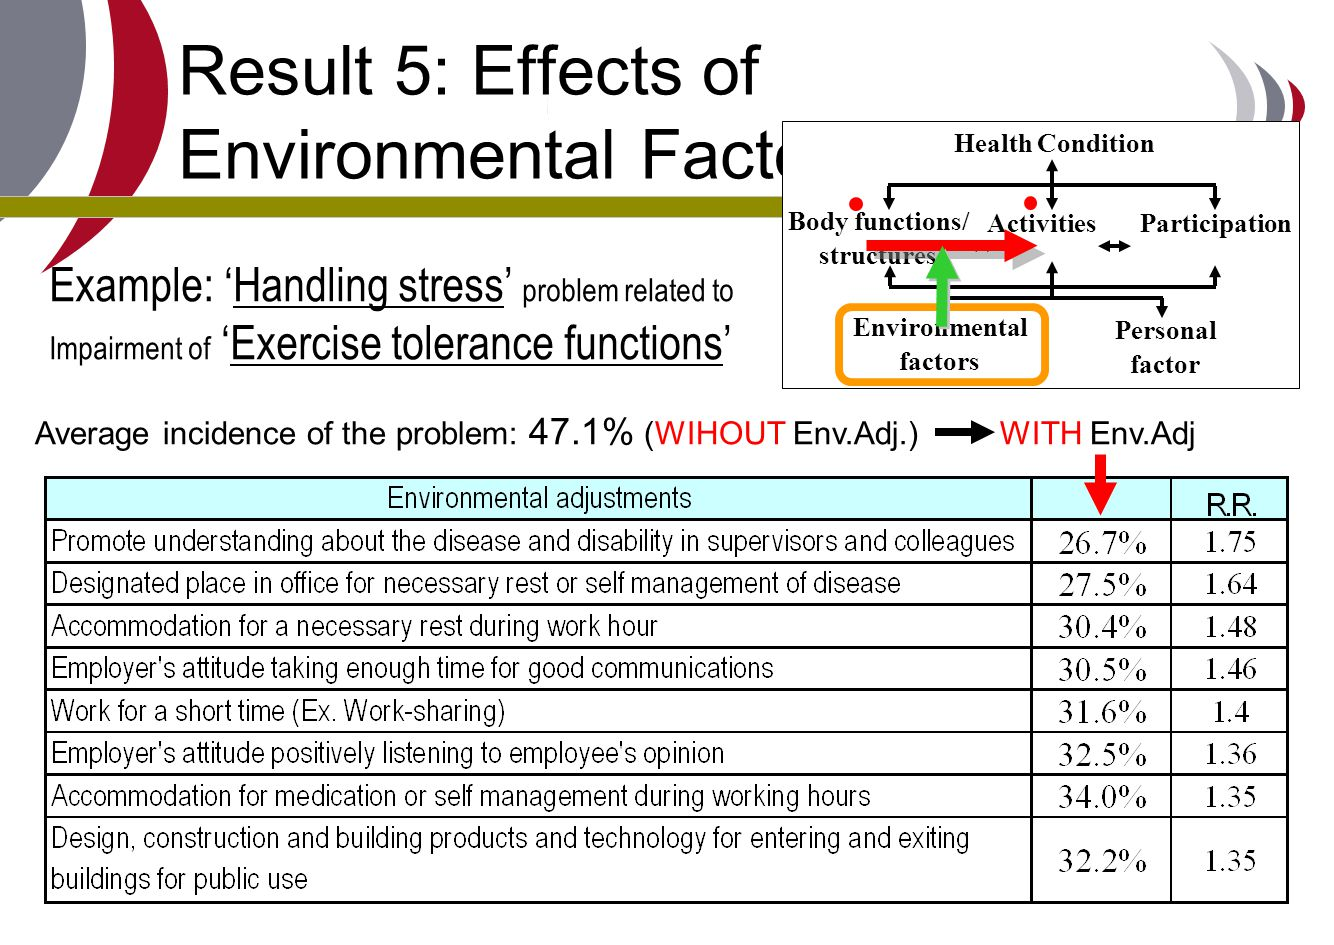 Result 5: Effects of Environmental Factors (1)